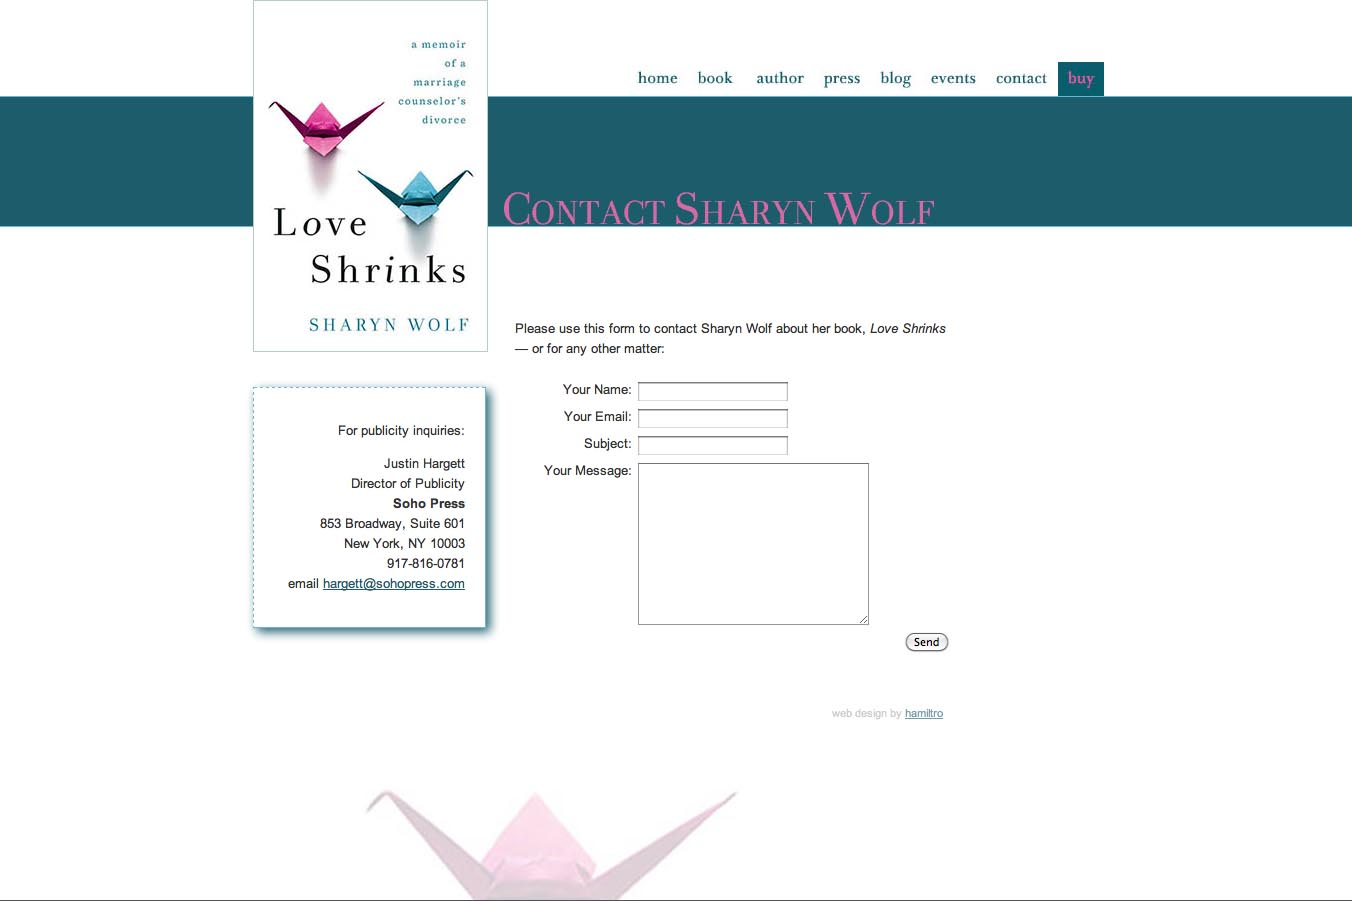 web design for a book by a relationships therapist - contact page